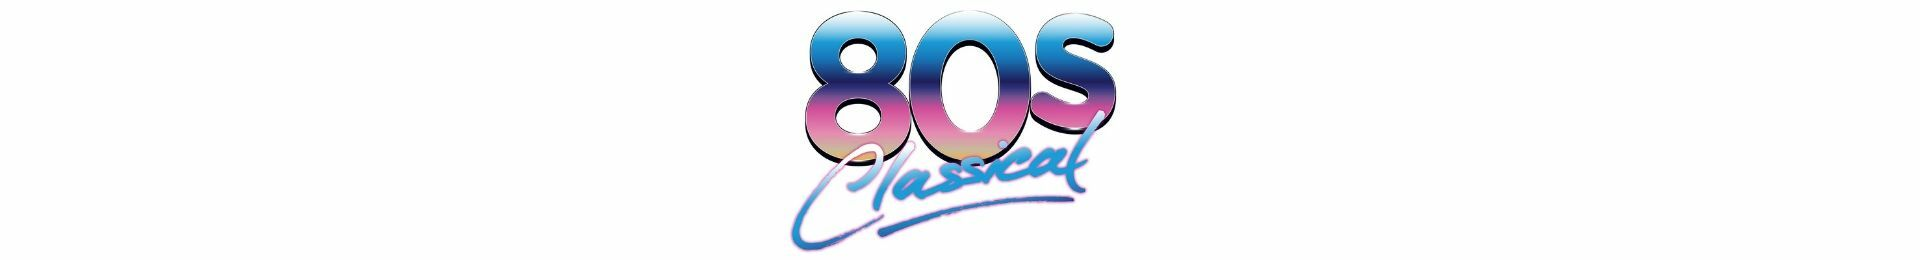 Friday Night is Music Night: 80's Classical banner image